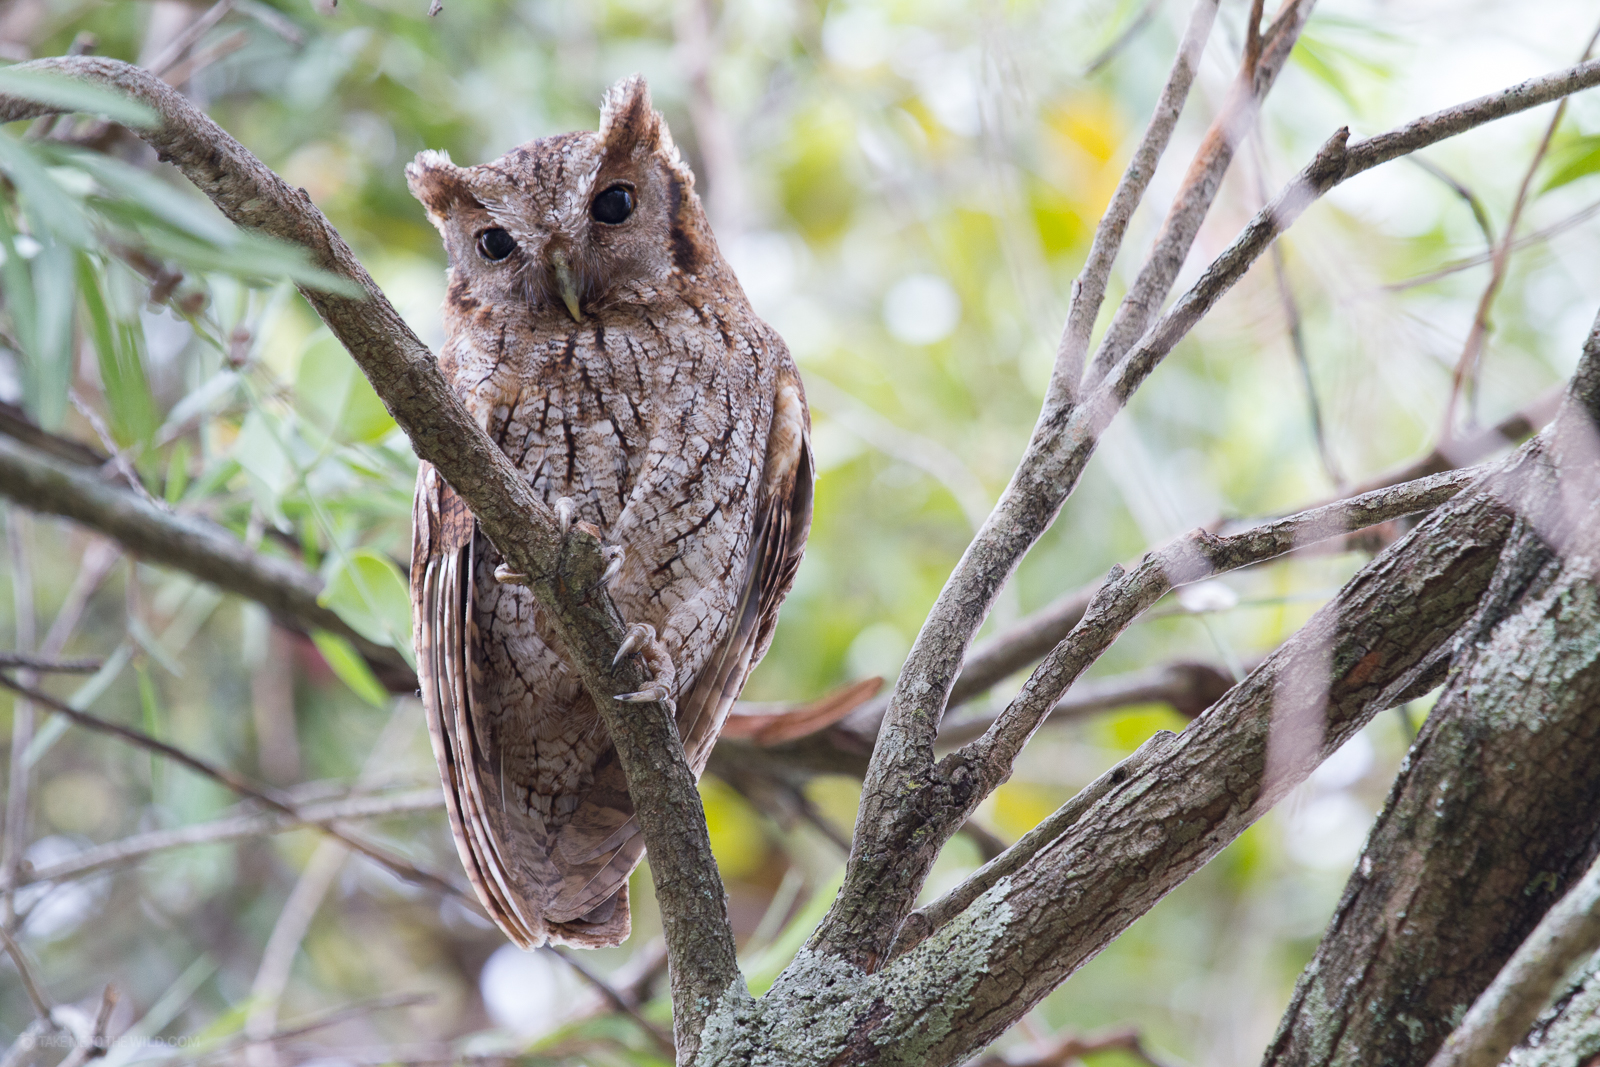 Tropical Screech Owl (Megascops choliba) perched on a branch during the day at Heredia Costa Rica